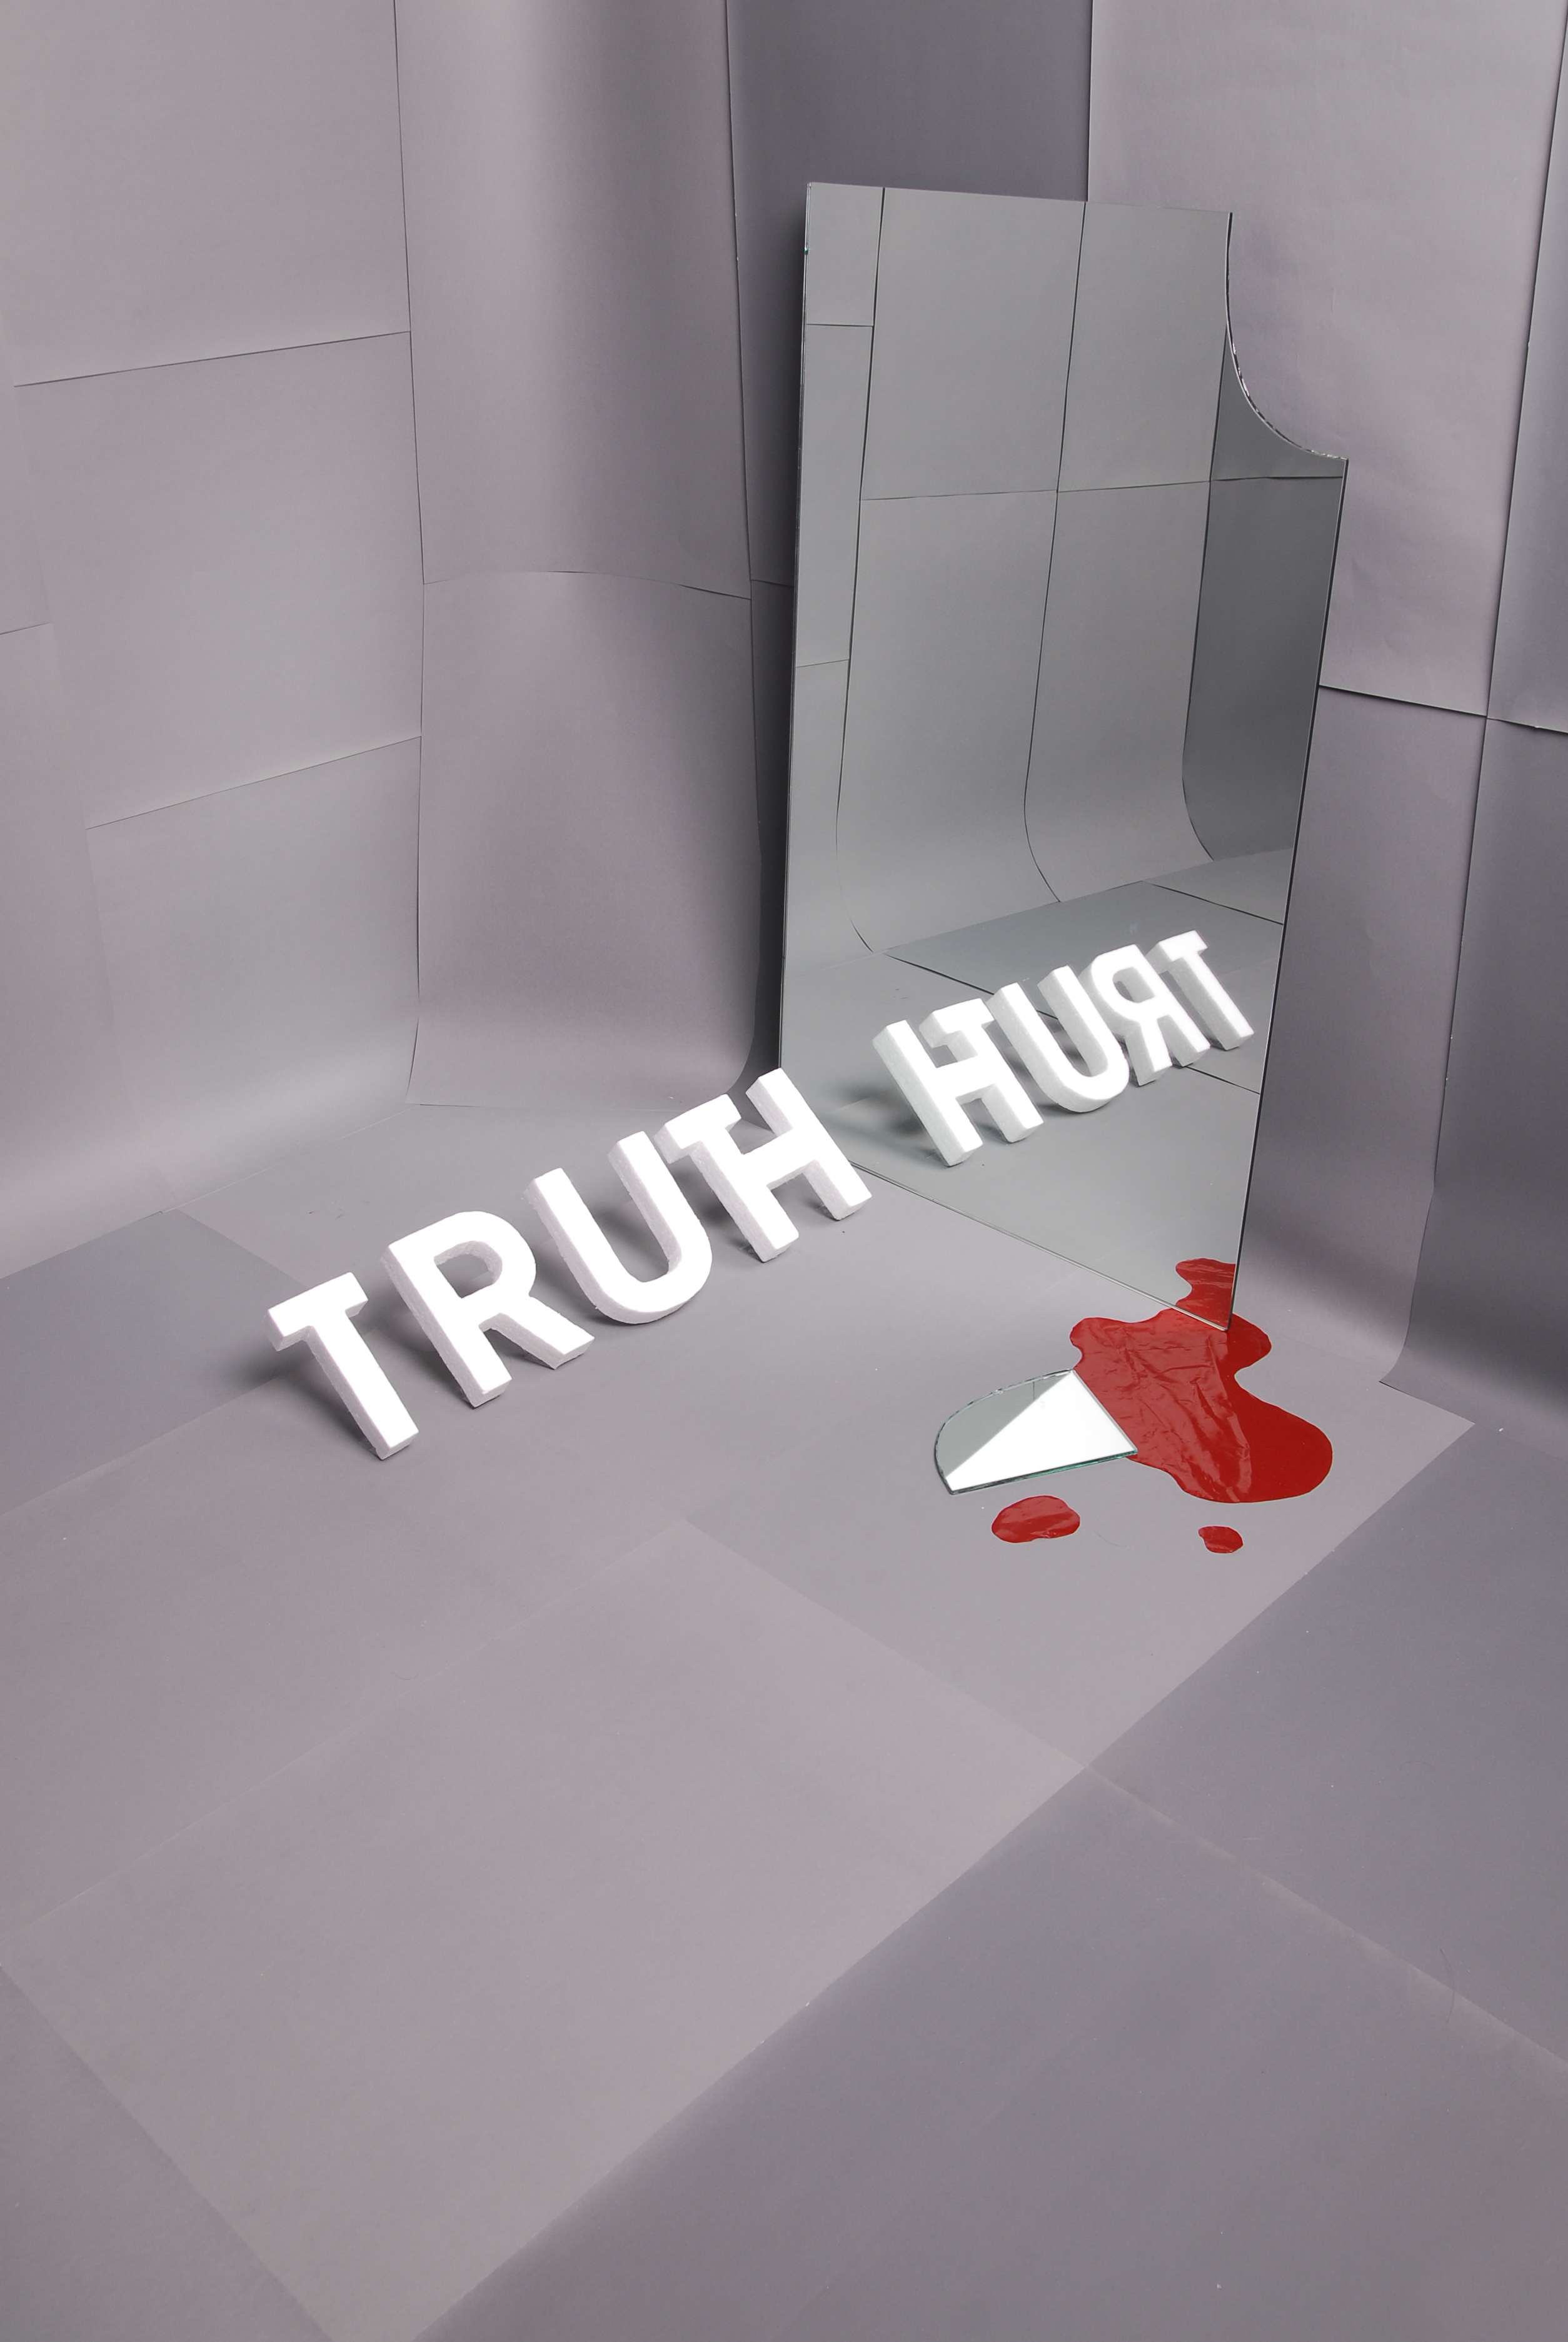 TRUTH DOES HURT